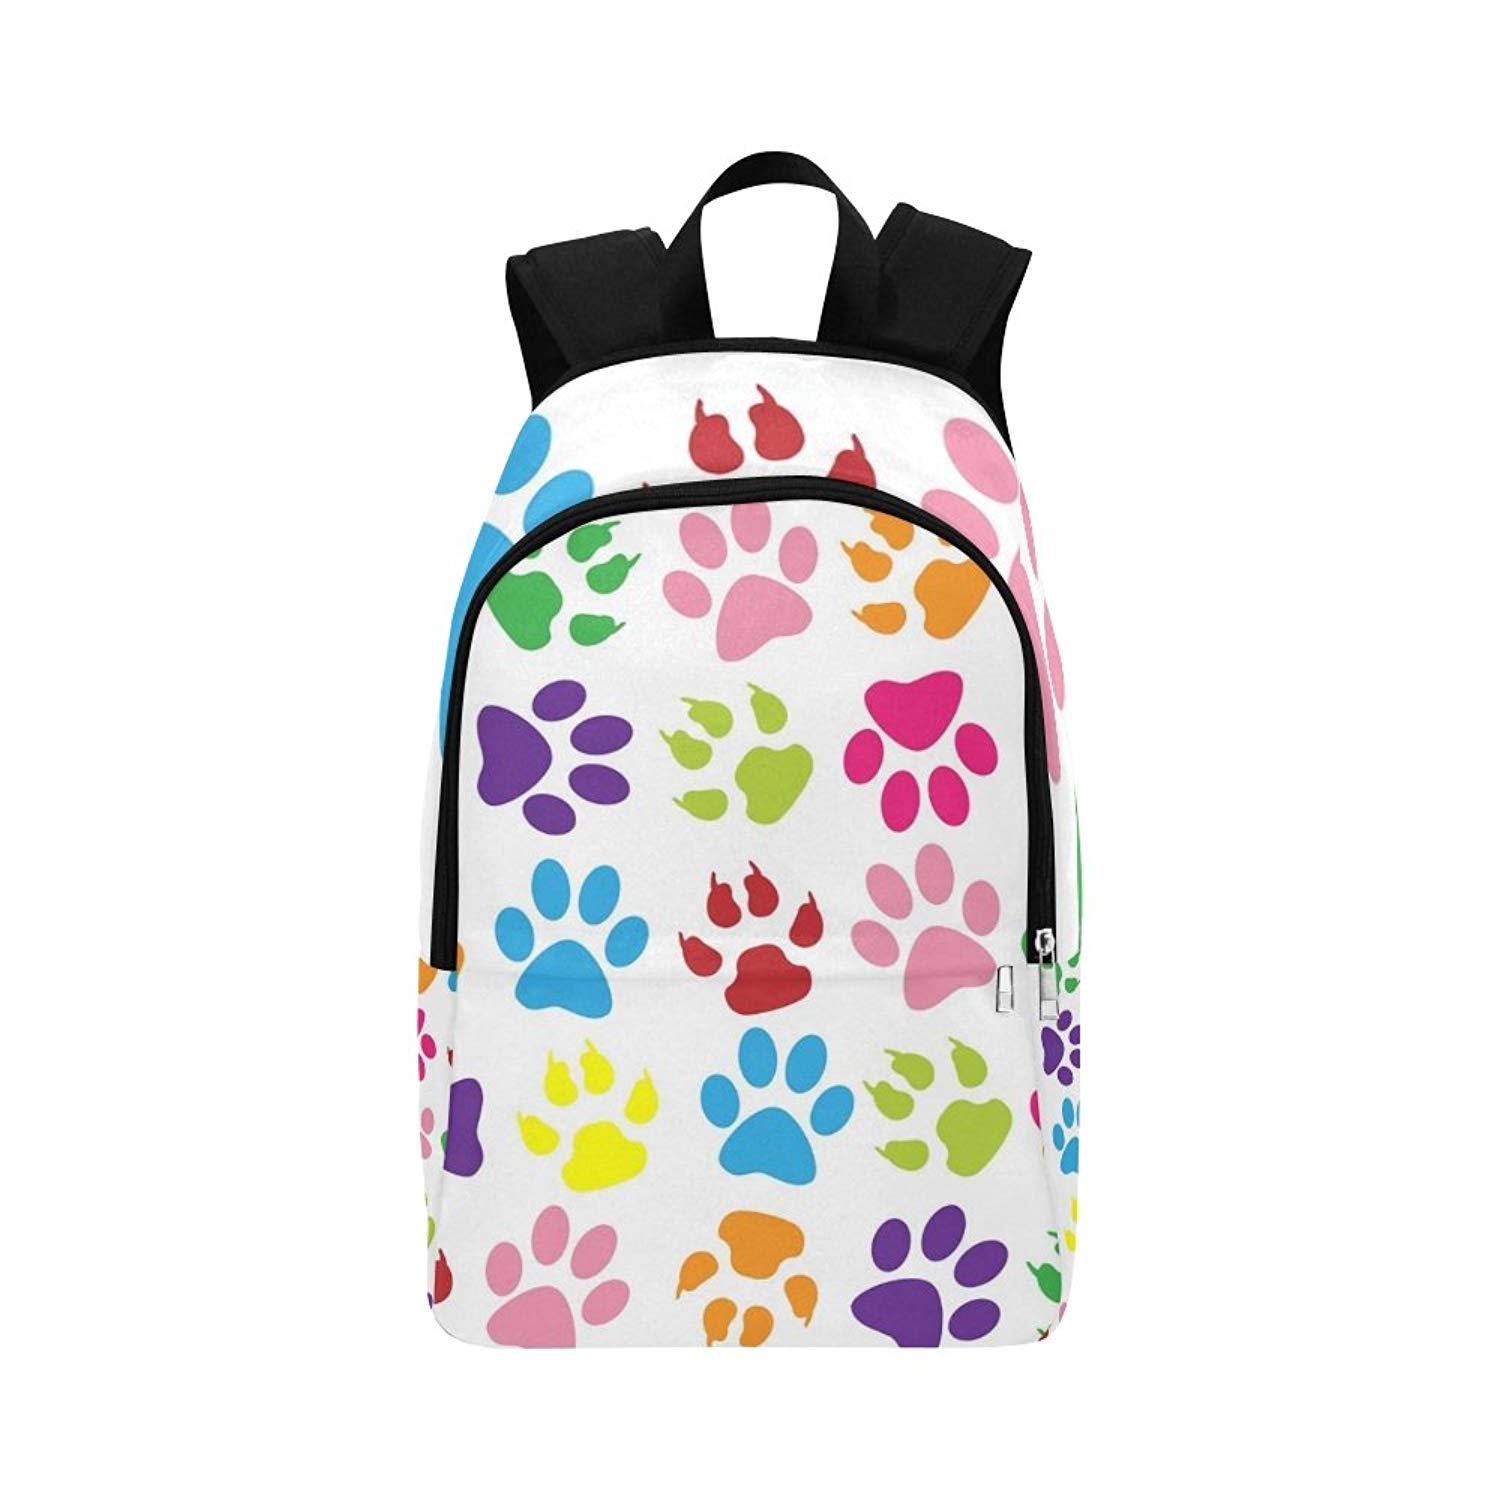 Leather Dachshund Dog And Paws Backpack Daypack Bag Women